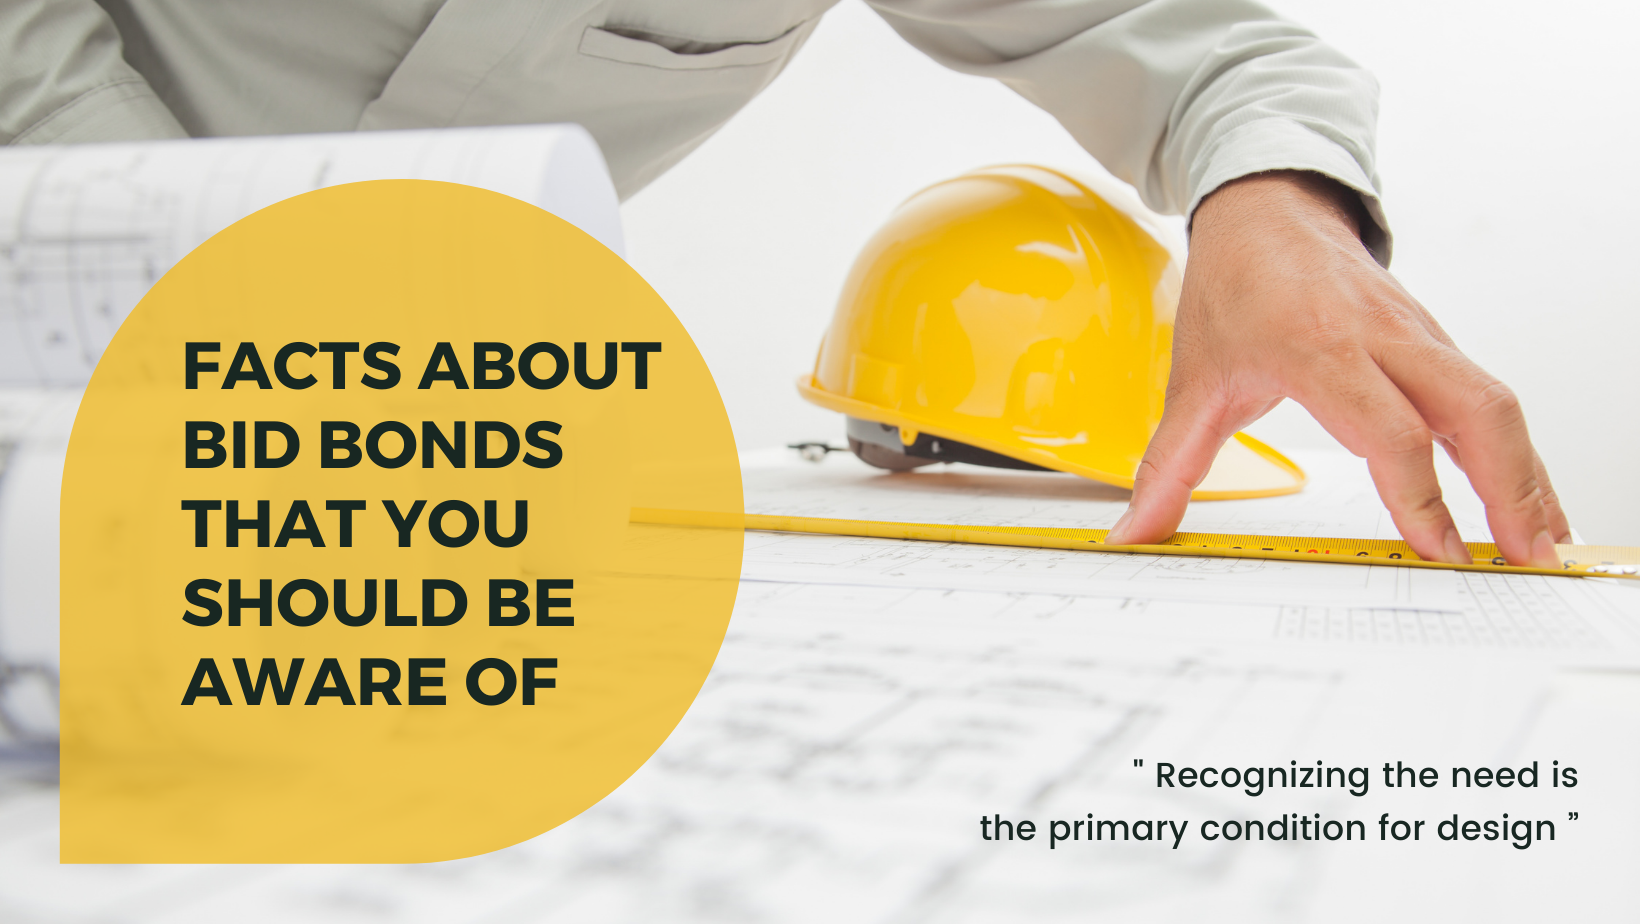 bid bond - what exactly is a bid bond - man creating a plan in white and yellow theme